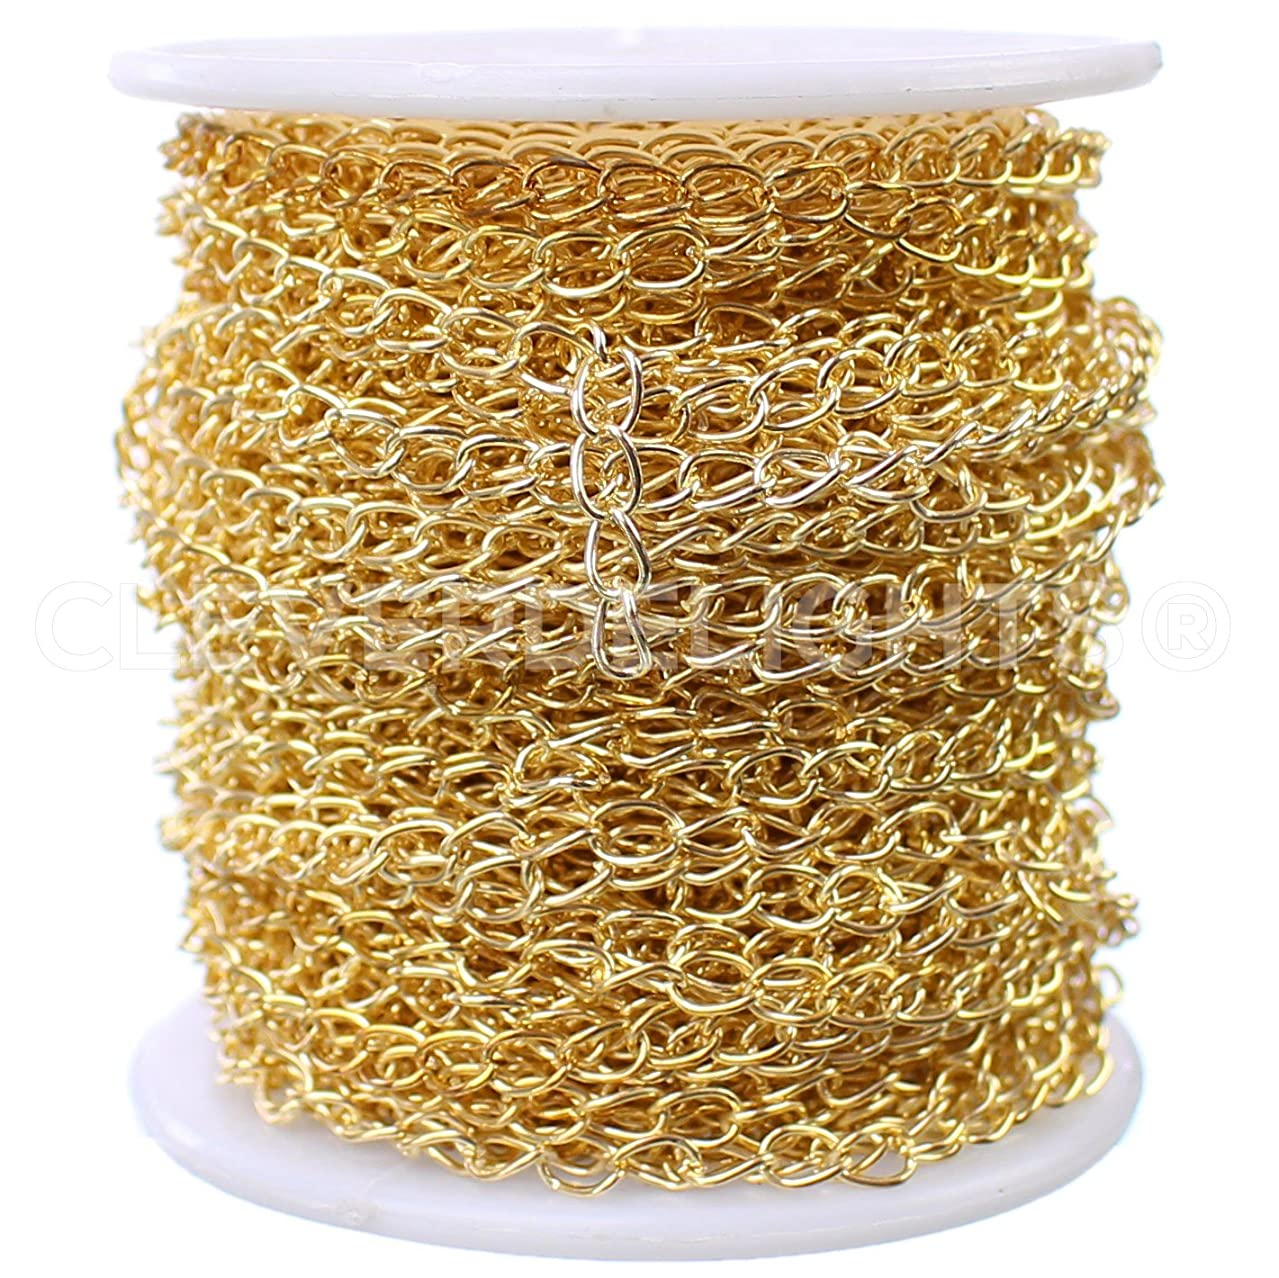 CleverDelights Curb Chain Spool - 3.5x5.5mm Link - Gold Color - 100 Feet - Bulk Roll Jewelry Chain